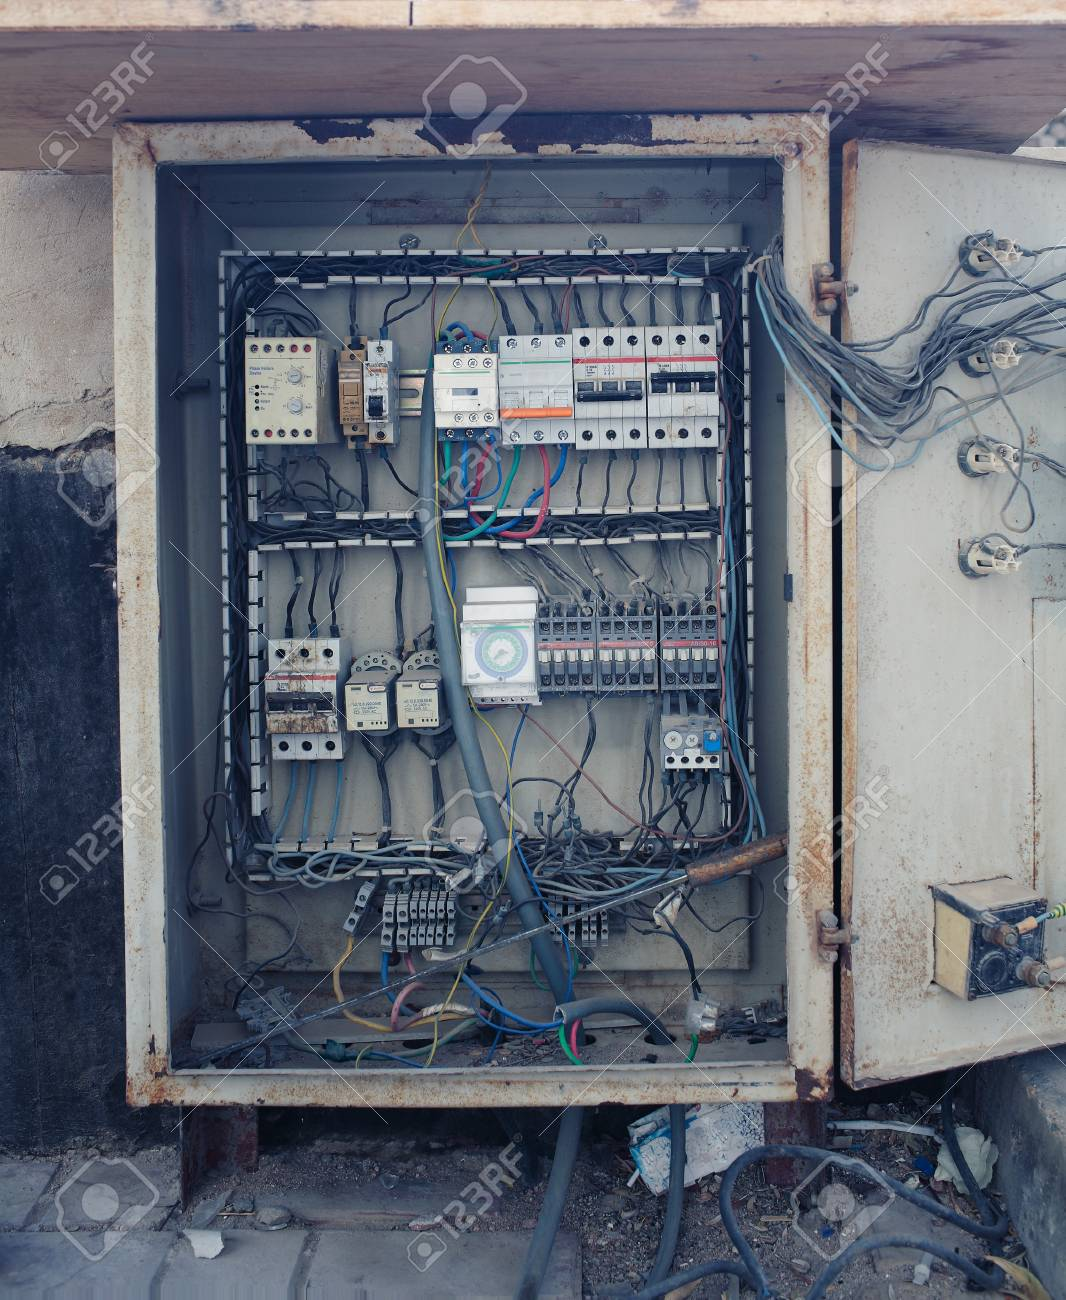 An old open electrical control panel box. Open Electrical Panel on